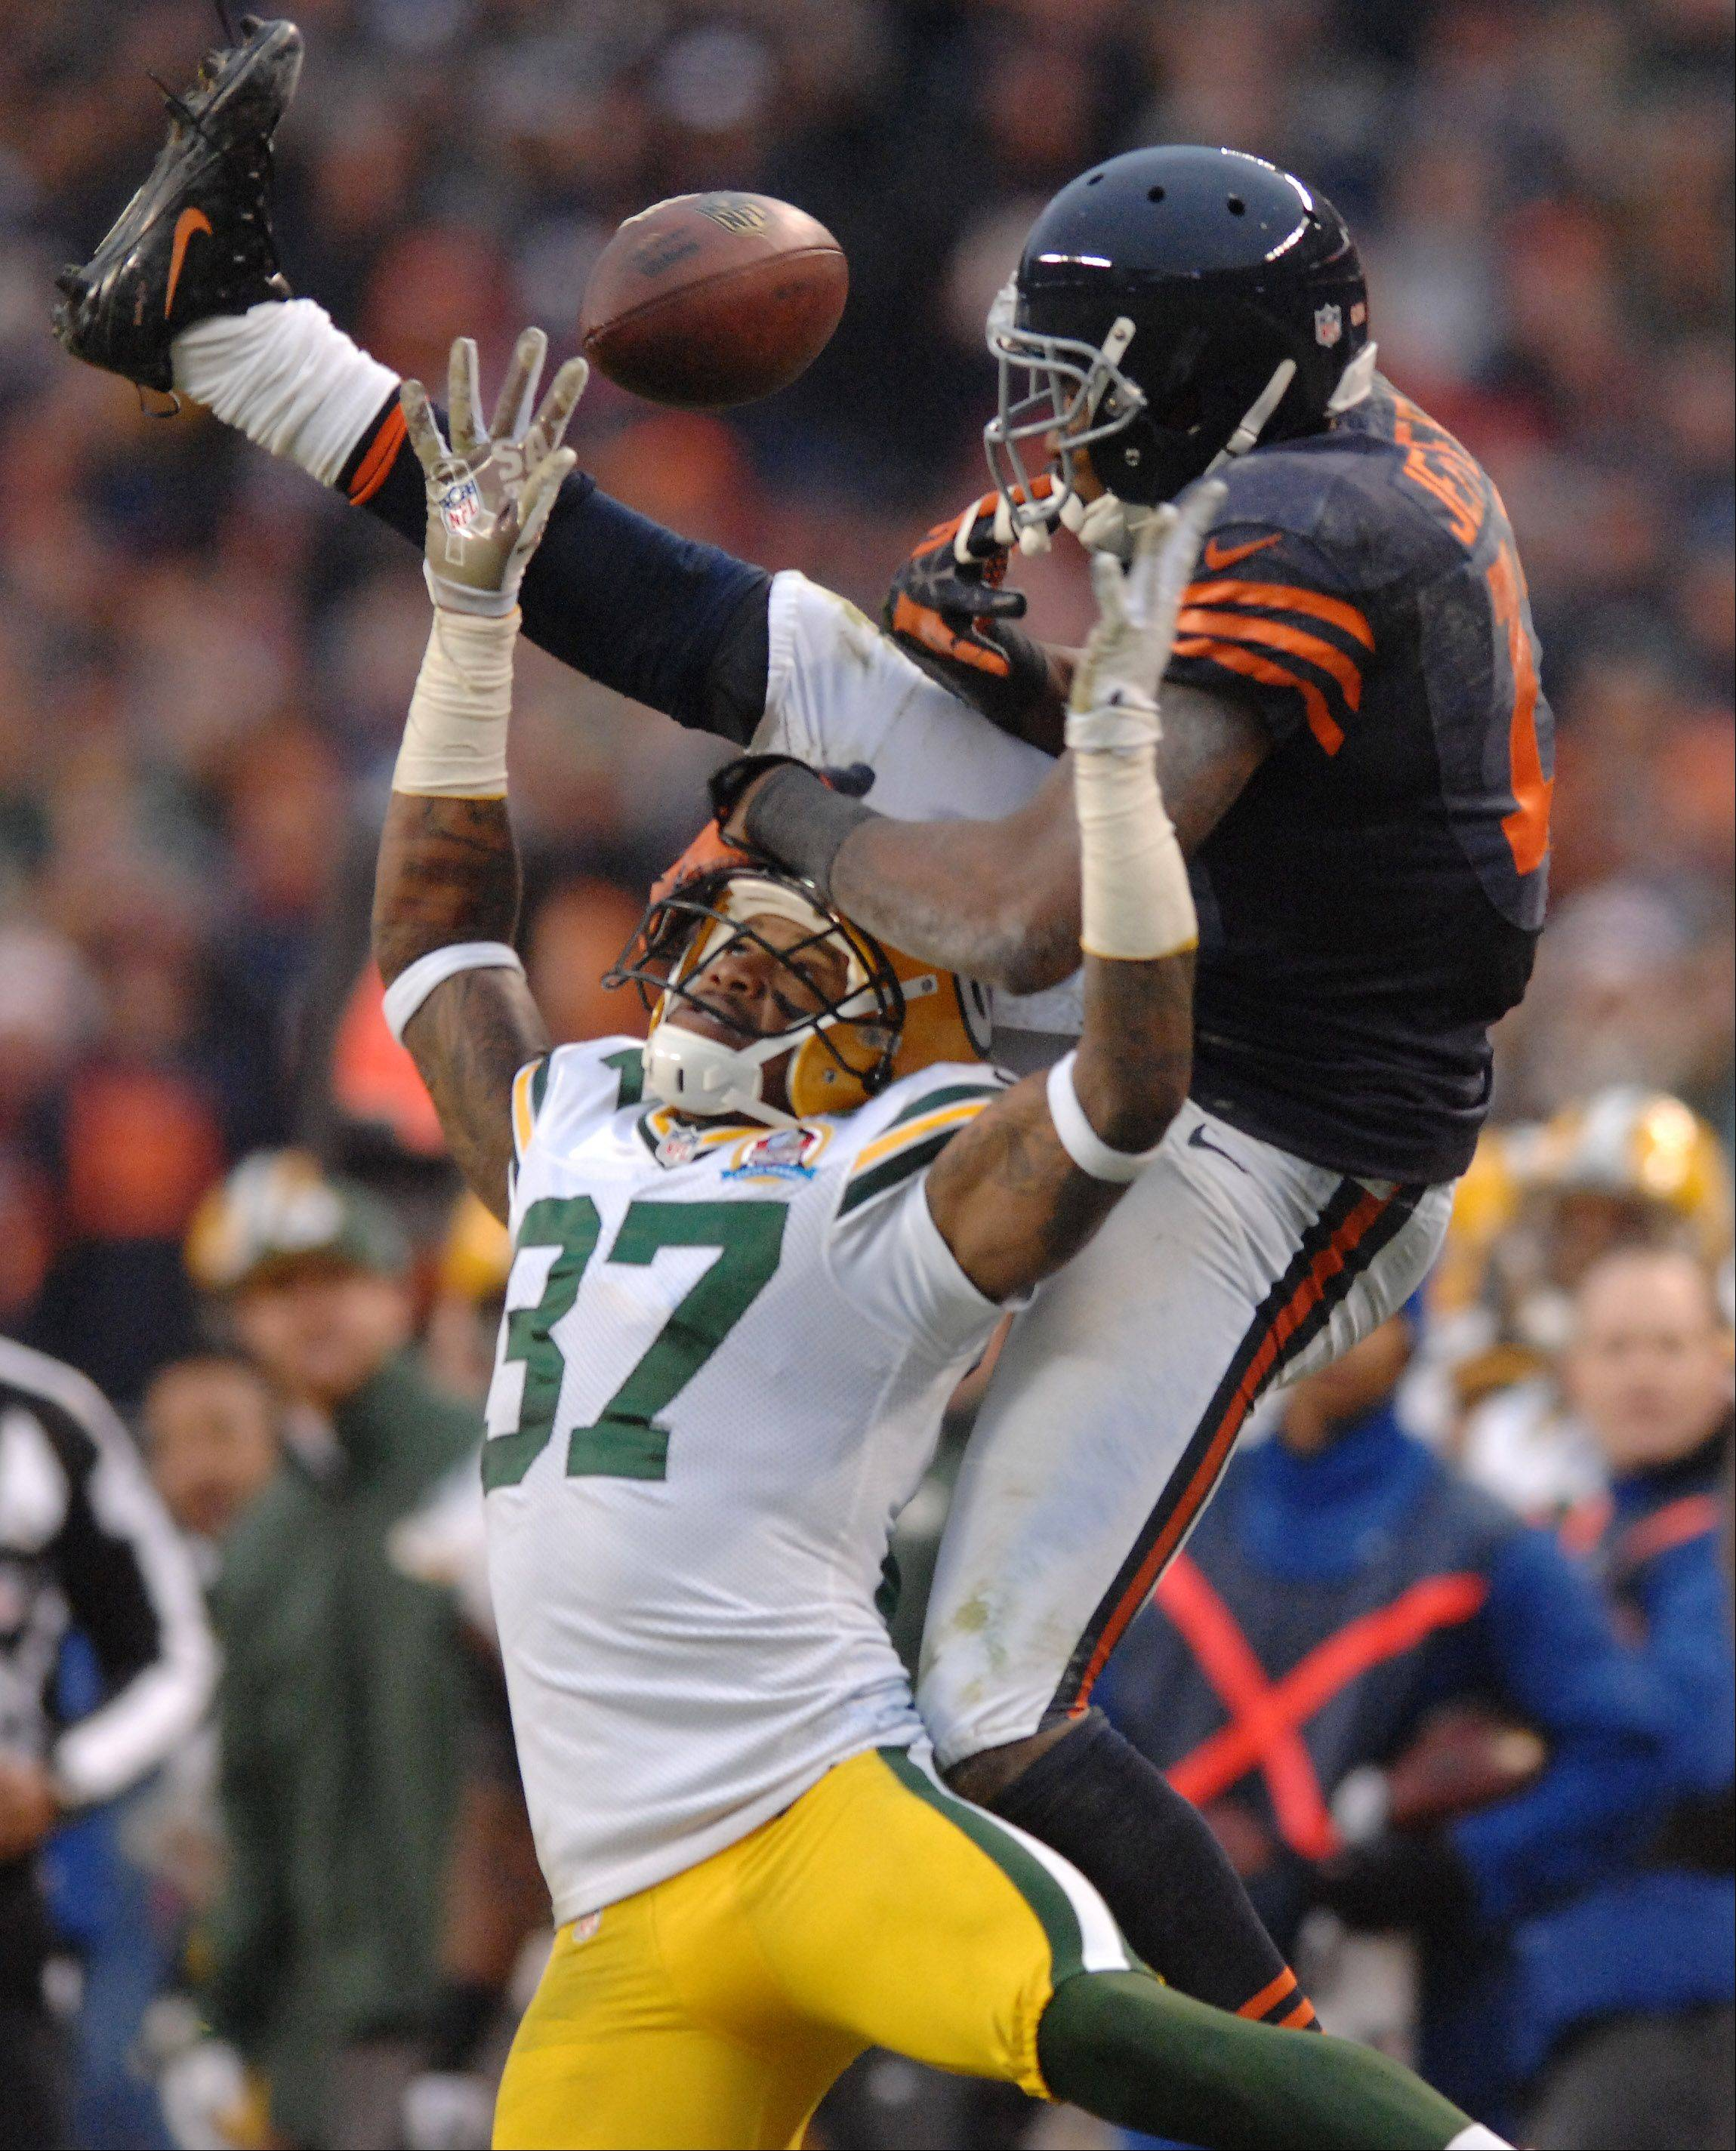 Chicago Bears wide receiver Alshon Jeffery (17) can't come up with a catch as he's defended by Green Bay Packers cornerback Sam Shields (37) during Sunday's game at Soldier Field in Chicago.